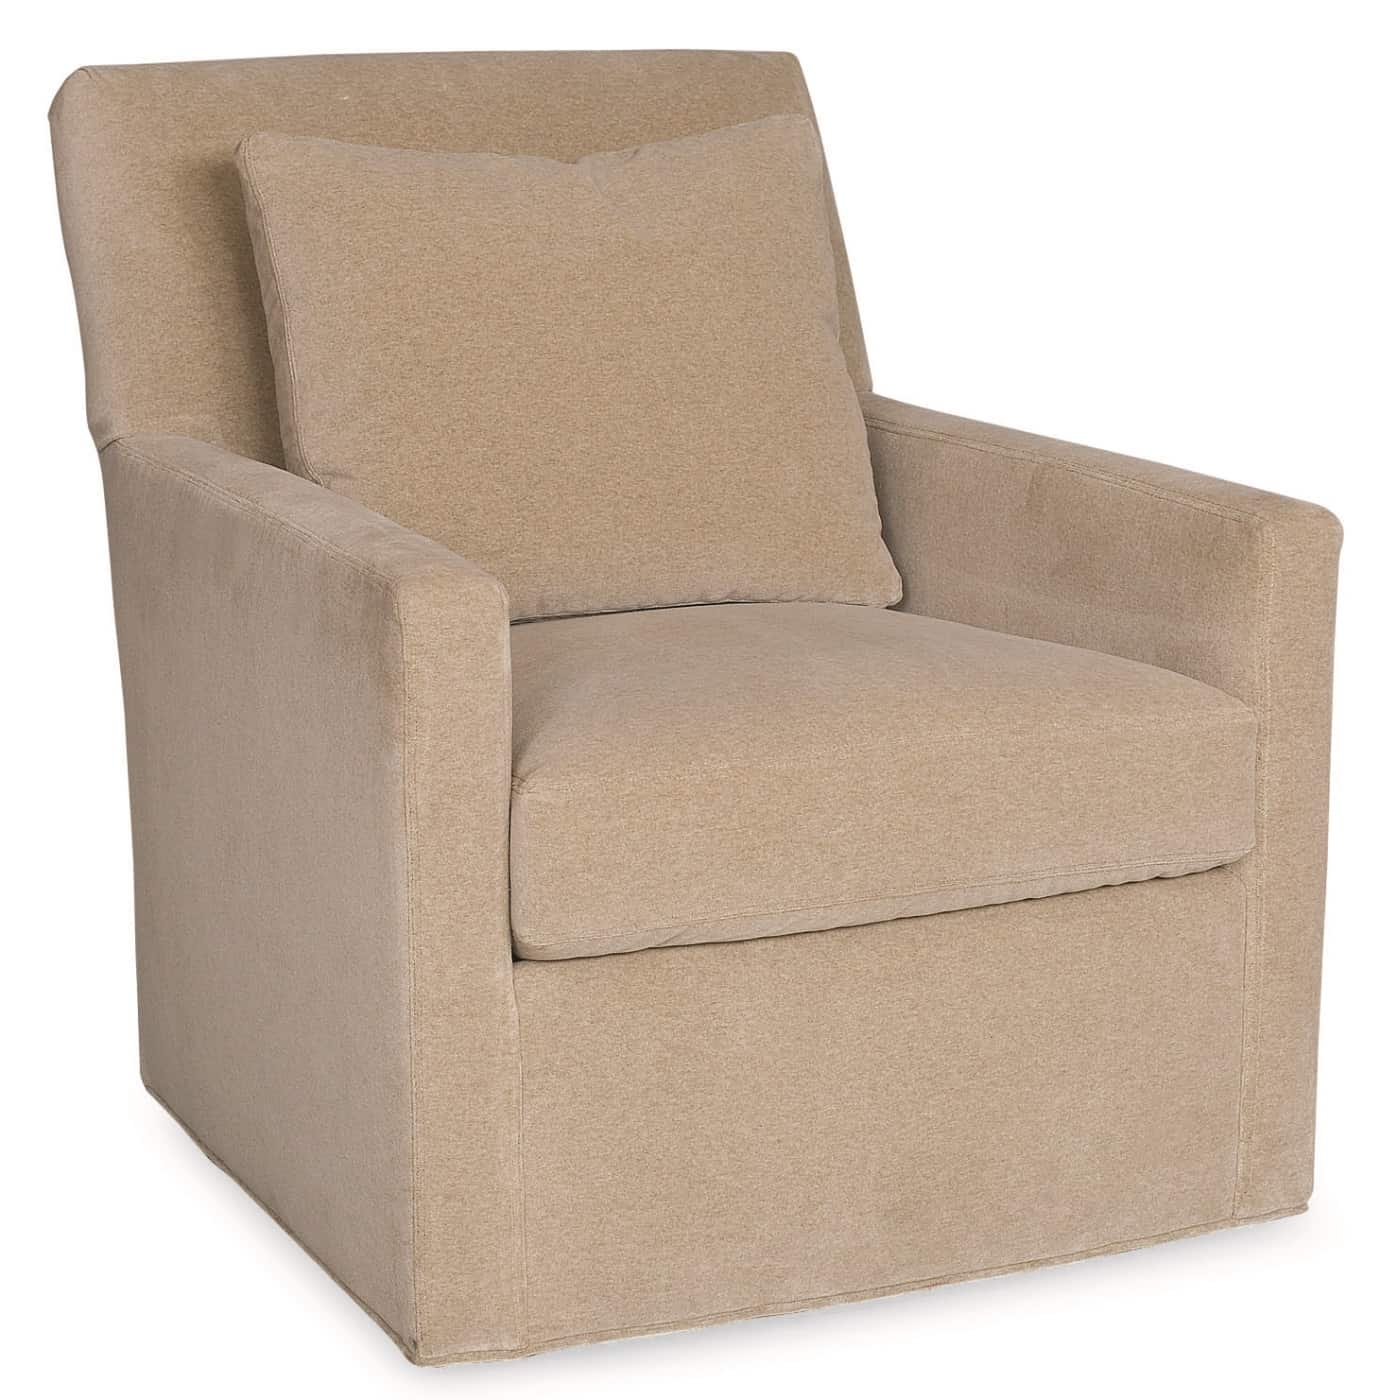 LEE Swivel Chair | BEST SELLER!